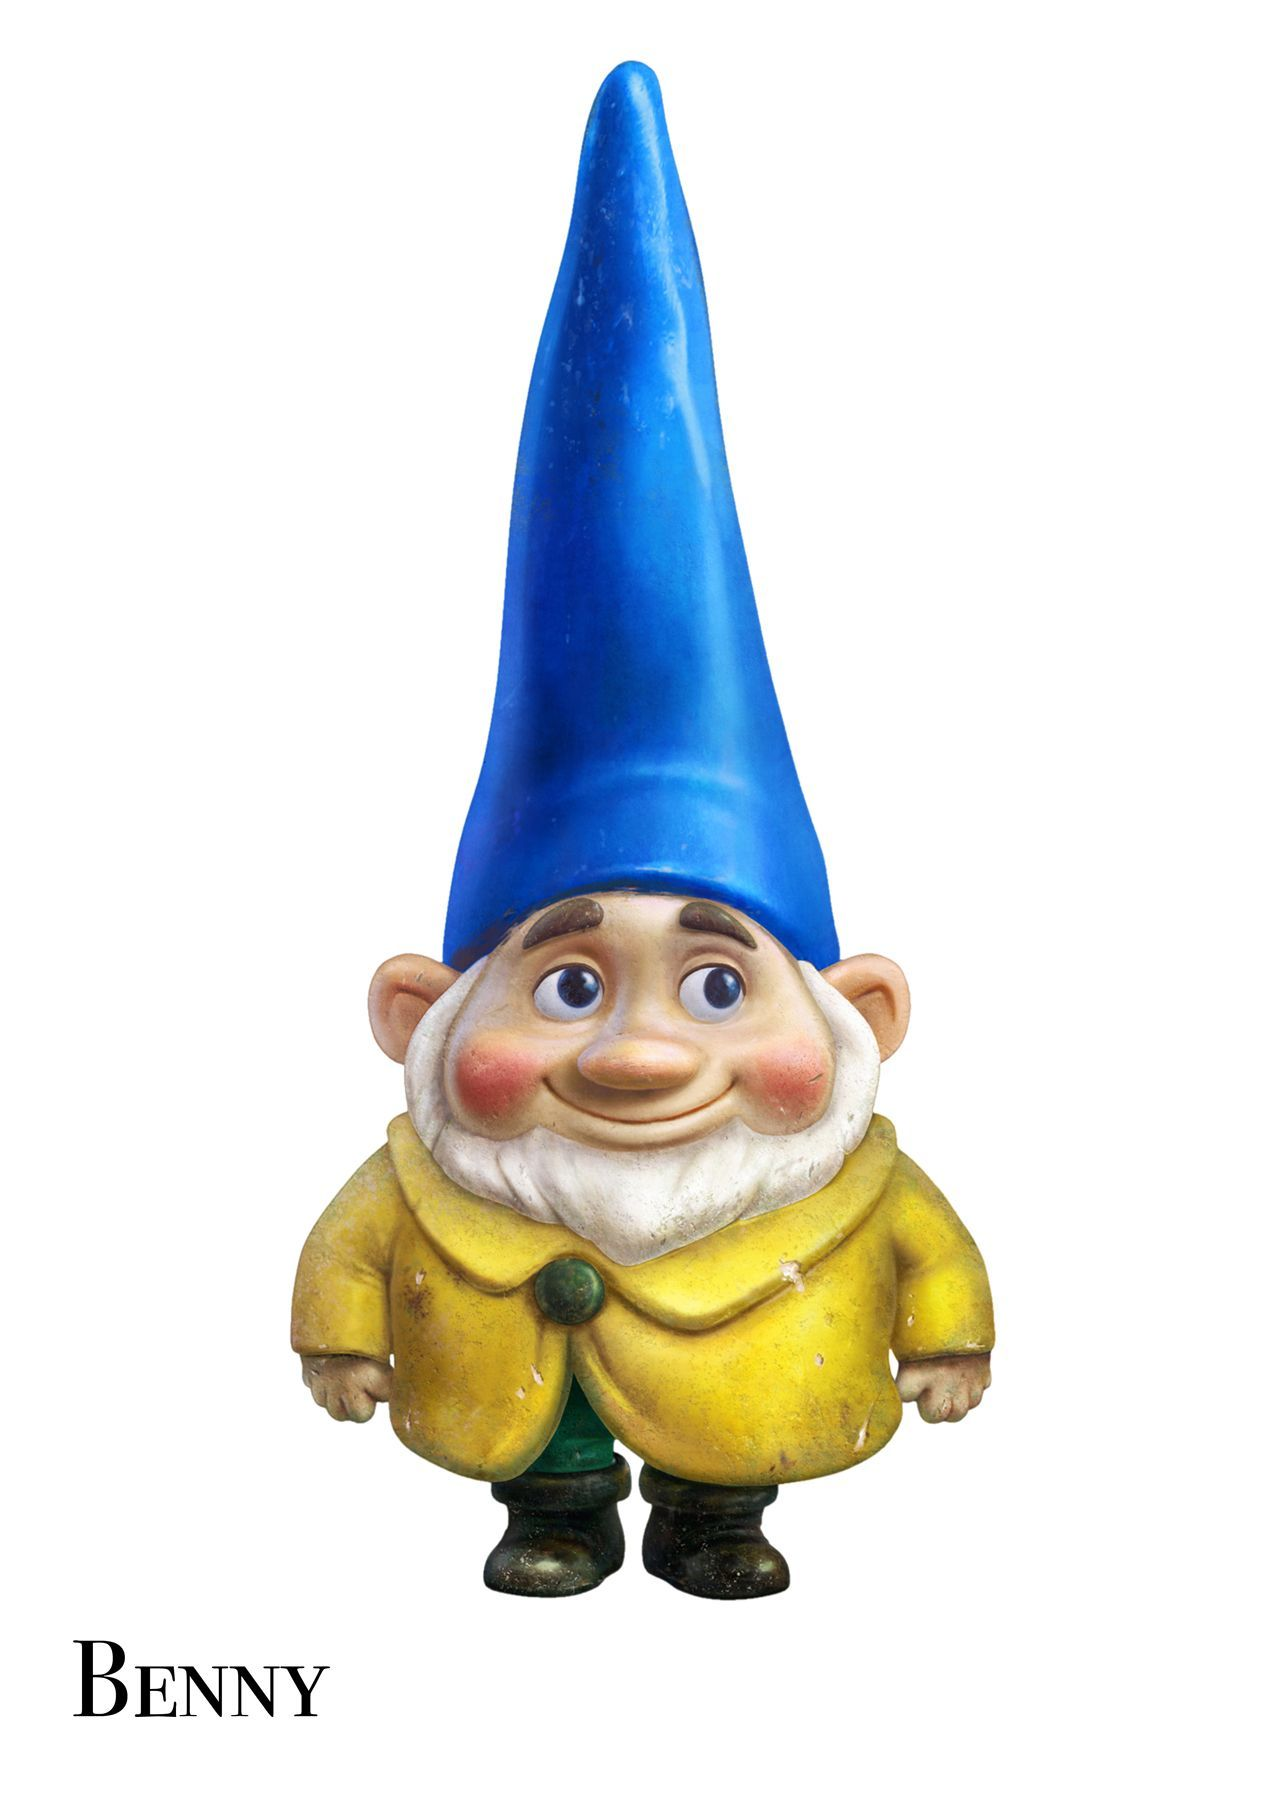 benny best friend to gnomeo in gnomeo and juliet hangin with my